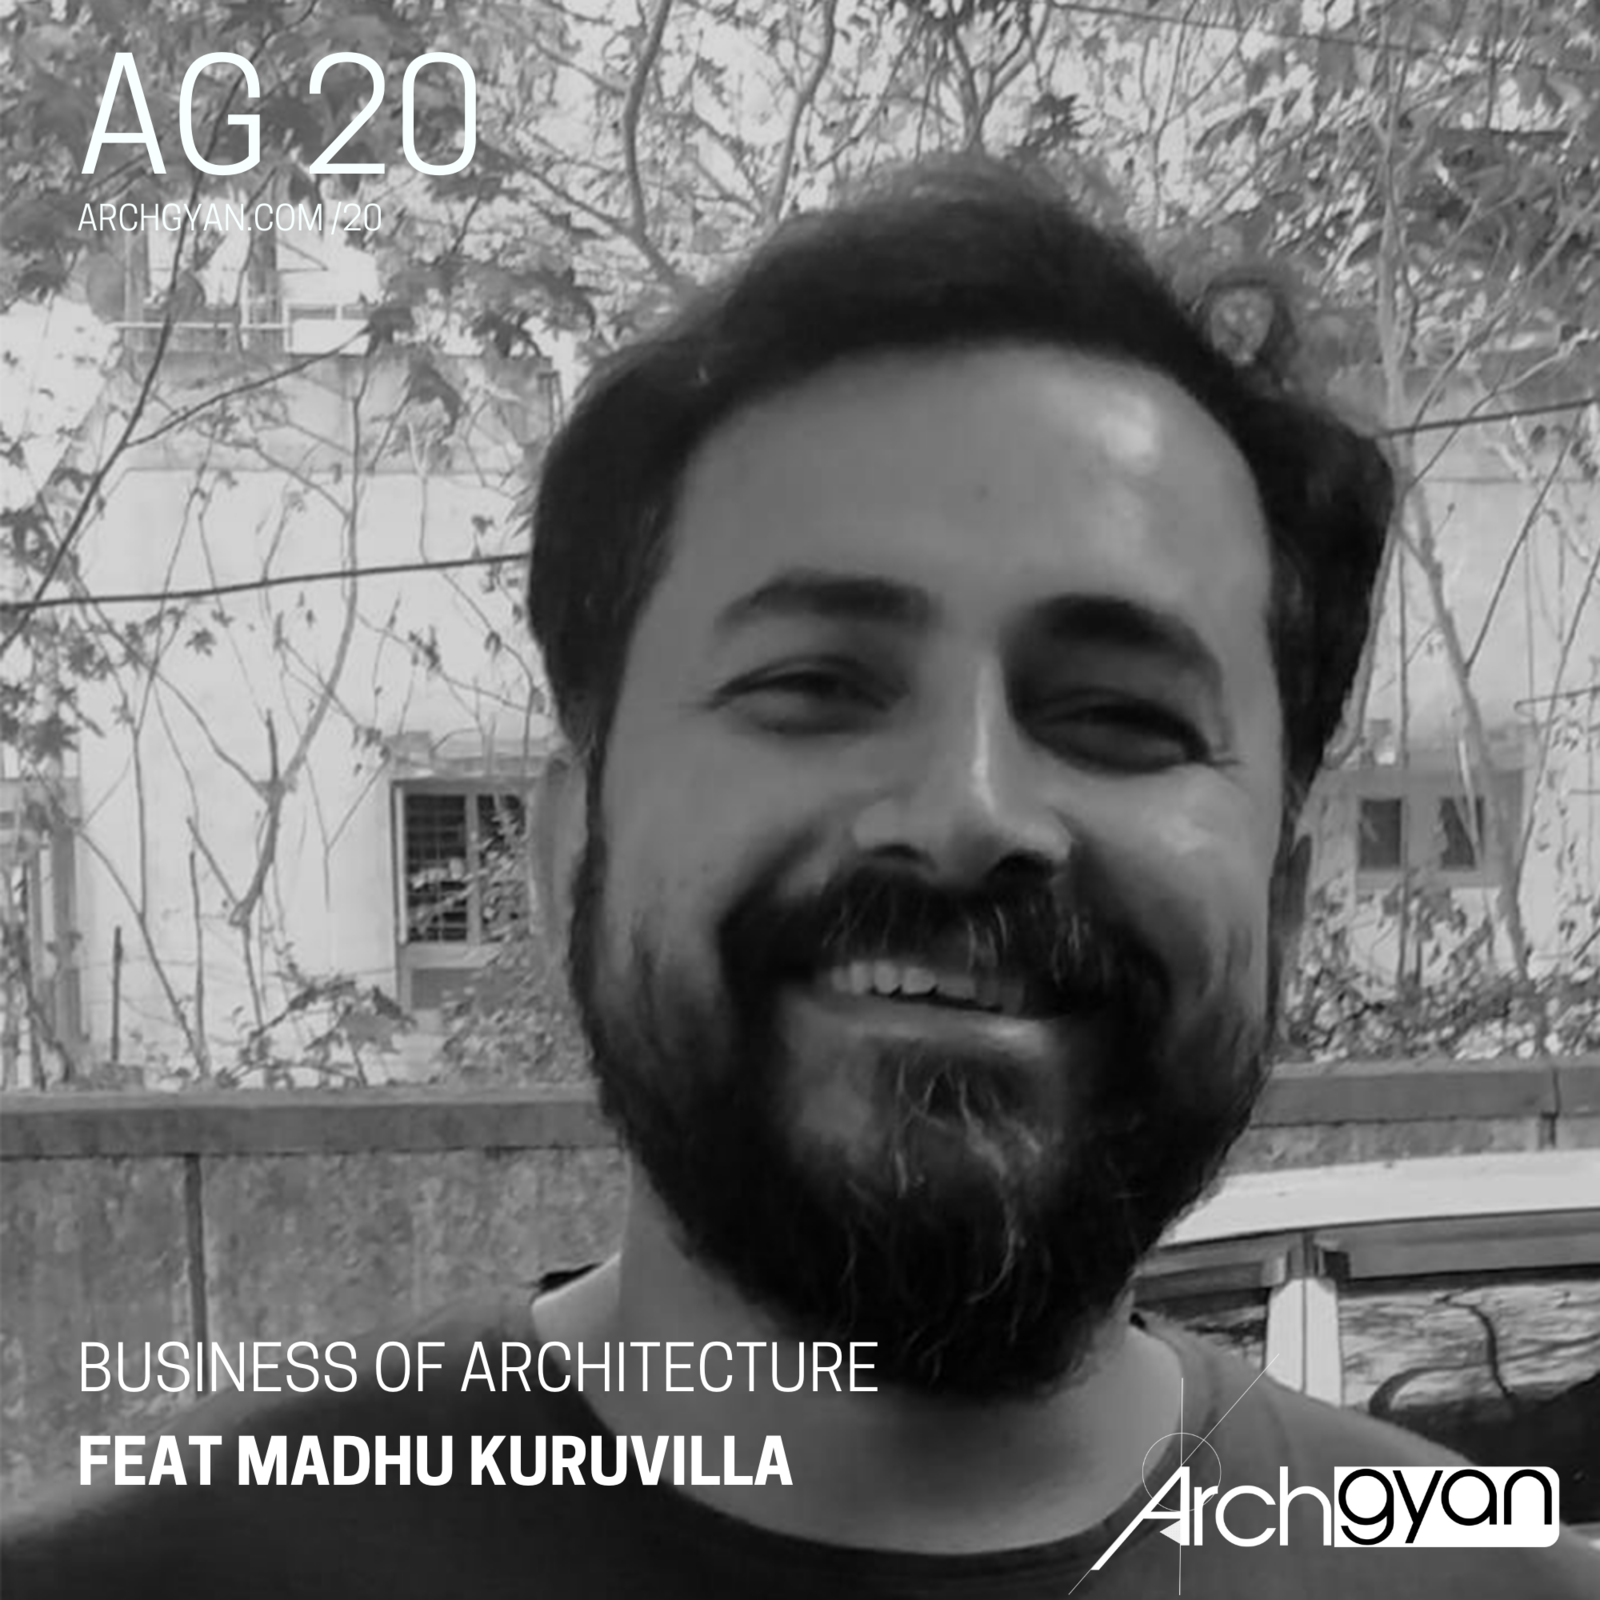 Business of Architecture in India with Madhu Kuruvilla | AG 20